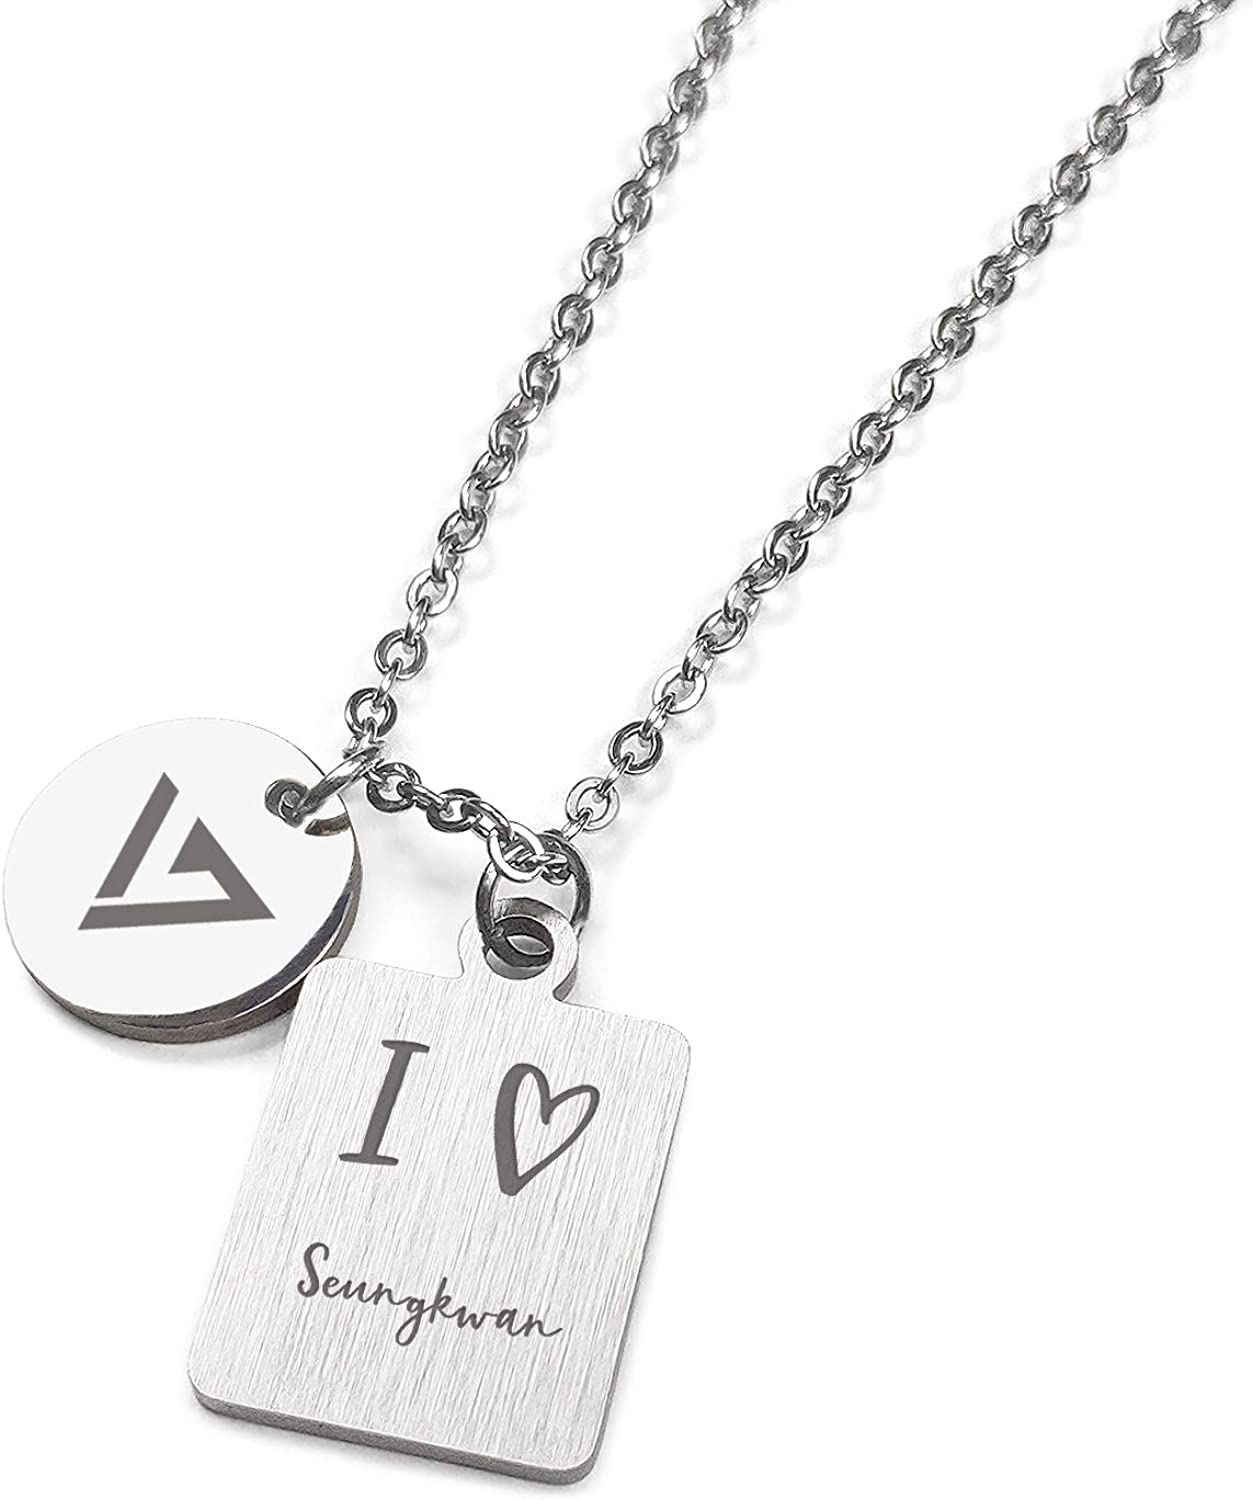 Fanstown kpop SEVENTEEN Necklace Dual Pendants Necklace Team Logo and LOVE Symbol to member name Necklace